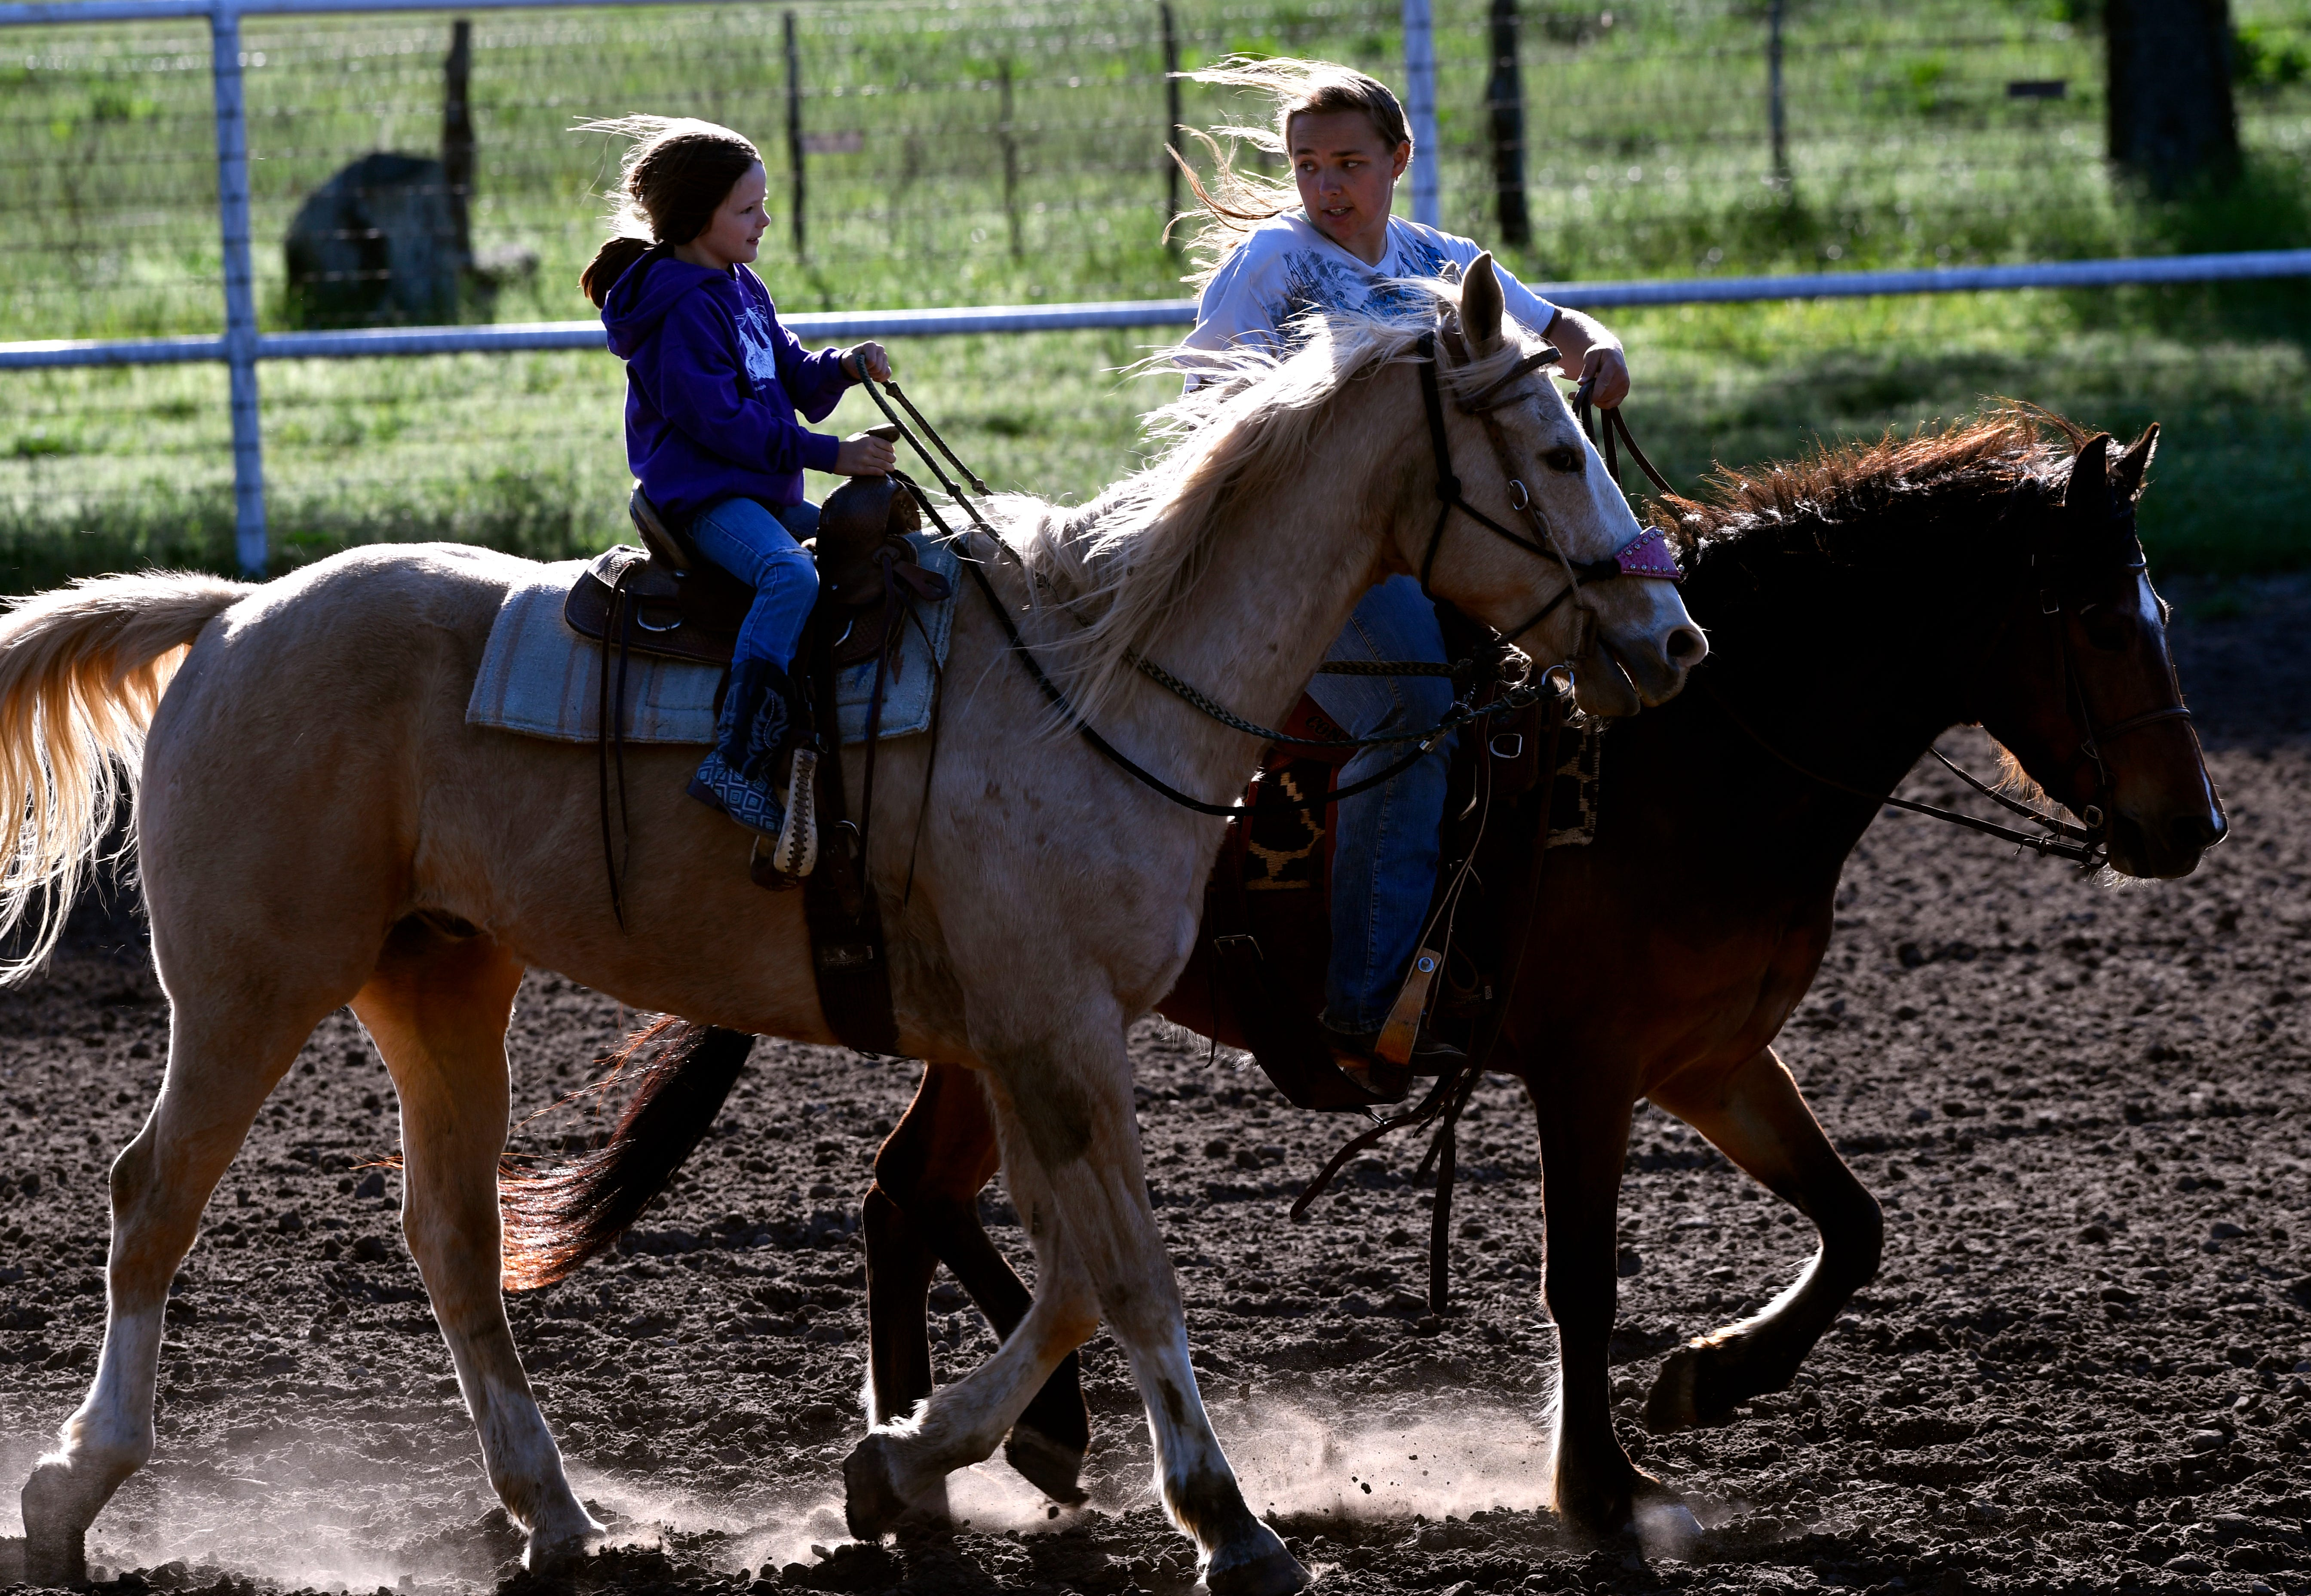 Cayden Frazier coaches Cami Stout, 7, around the barrels Thursday at the Comanche Rodeo Arena. It was Cami's first time on a course like this.